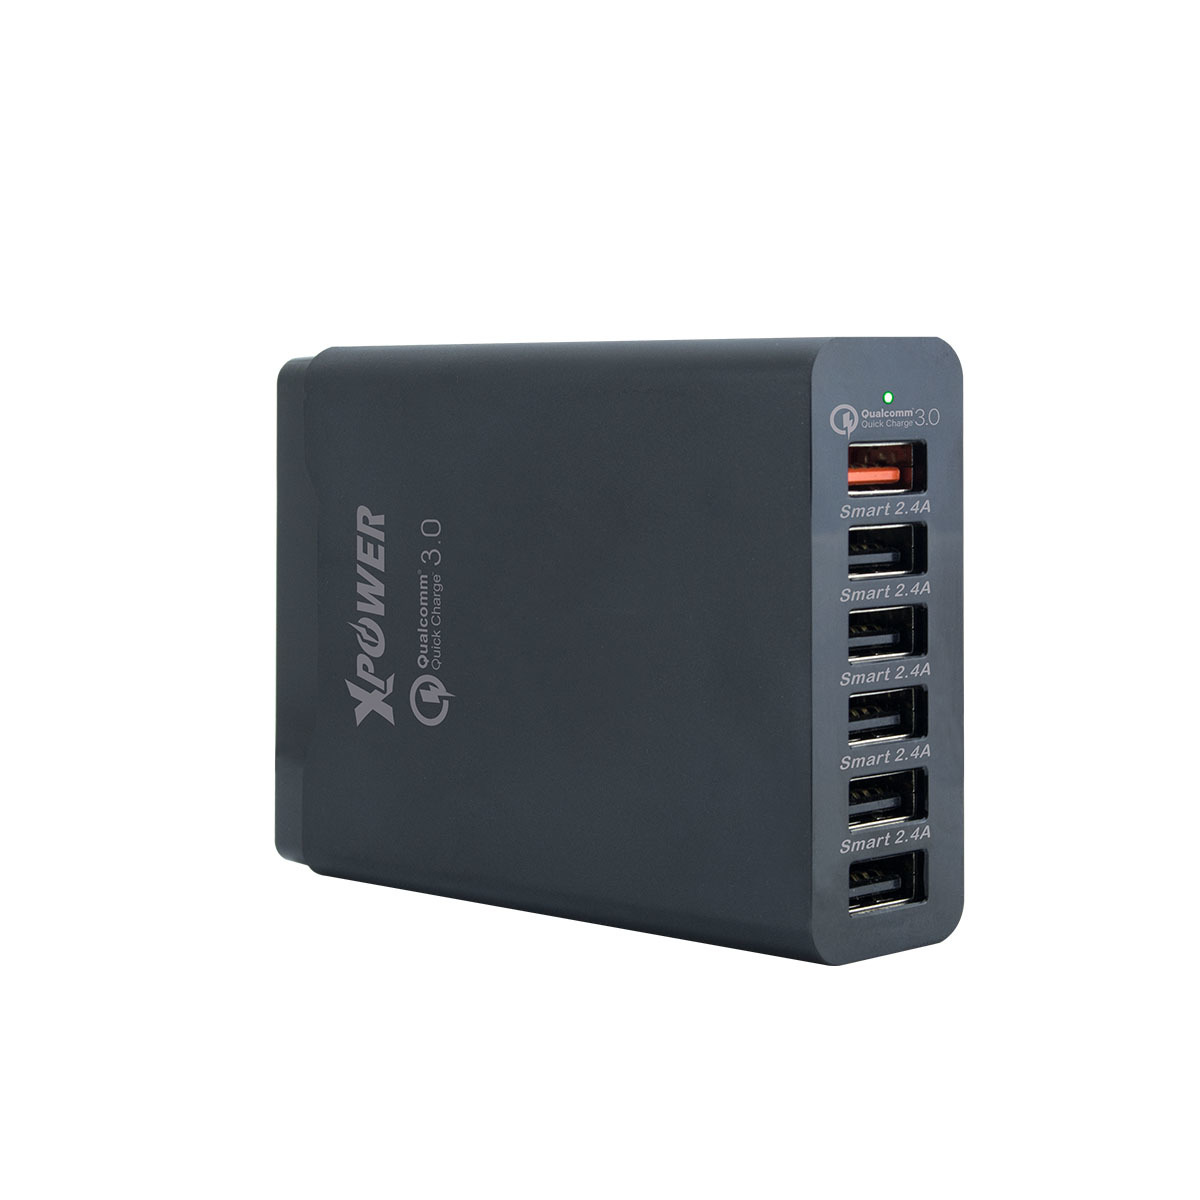 DC6Q+ Quick Charge 3.0 Smart Charger [Upgraded Version]